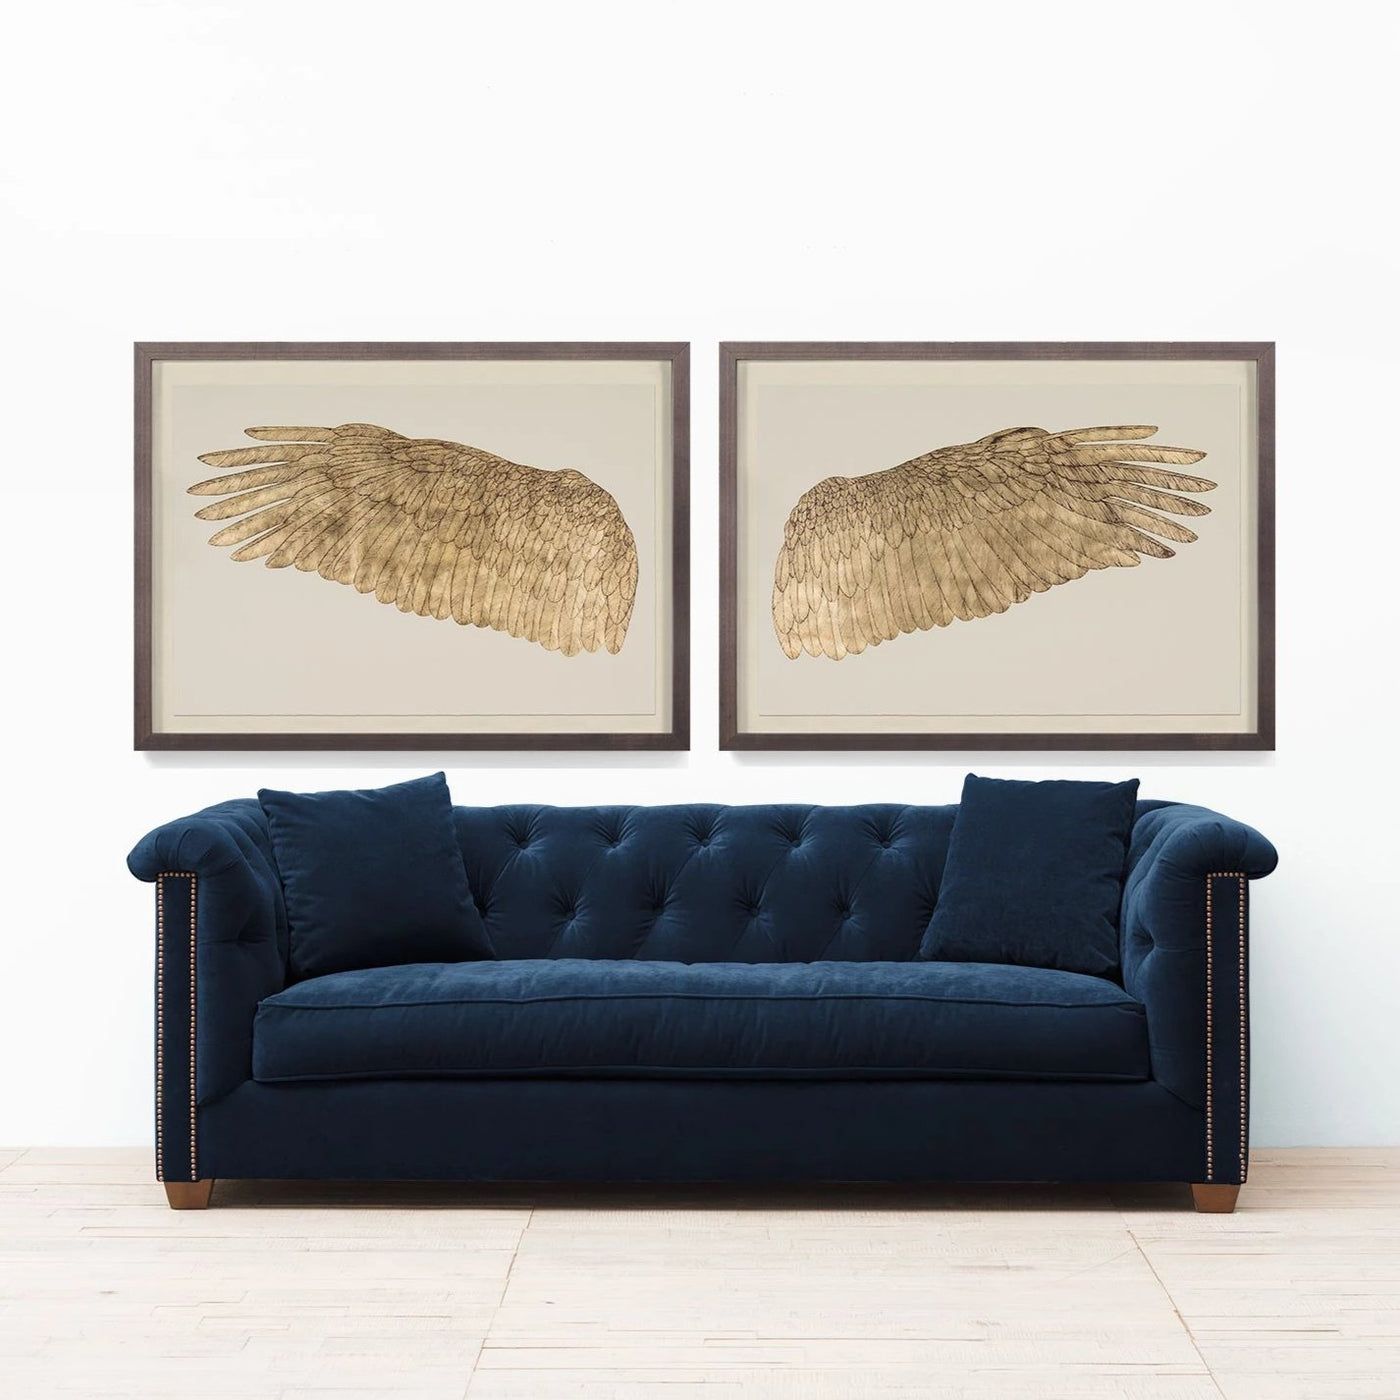 Natural Curiosities Wings of Love Gold Right Artwork Room View